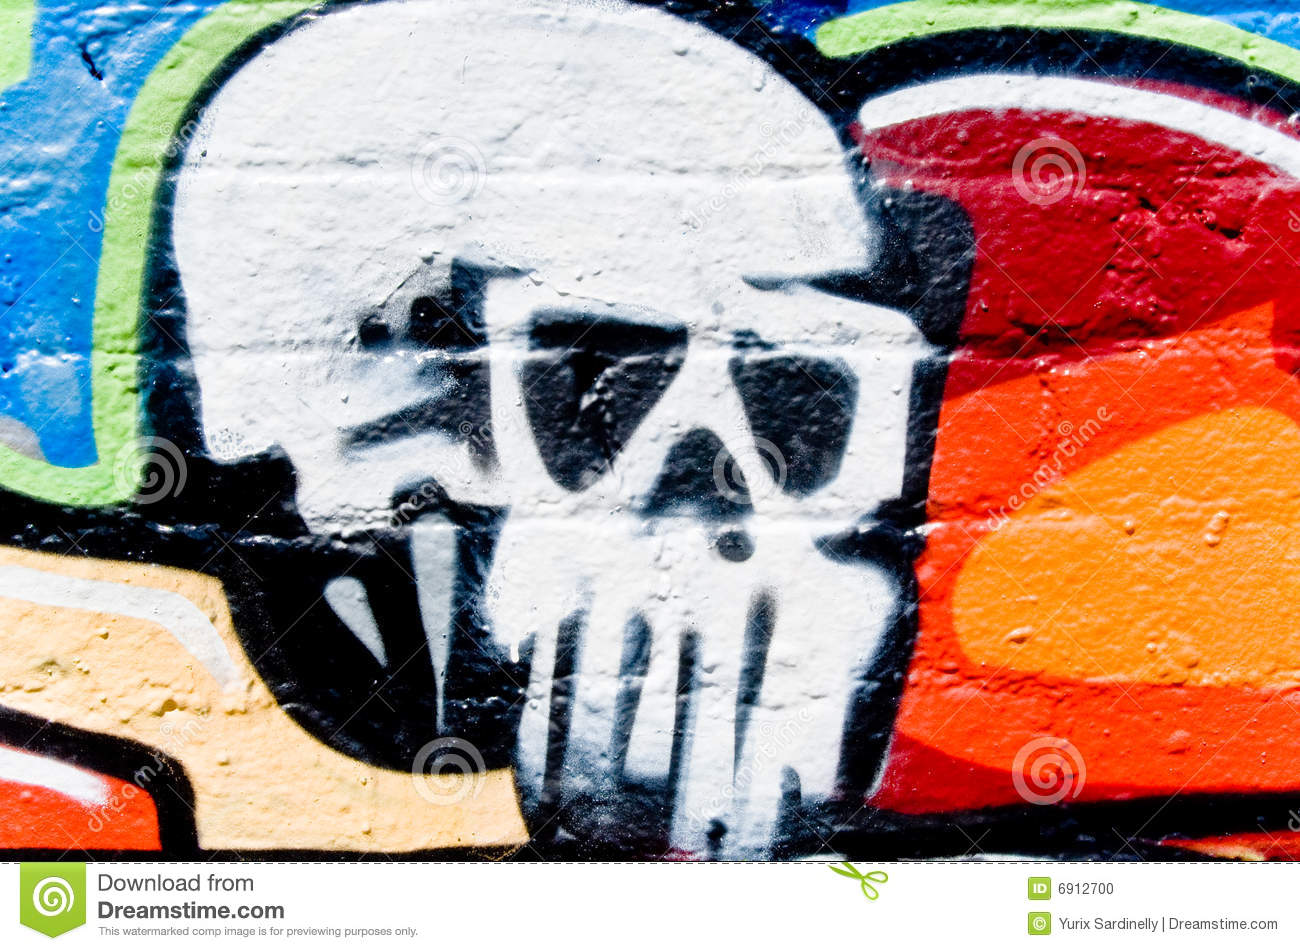 Download Graffitiskull On The Wall Stock Illustration Illustration Of Orange